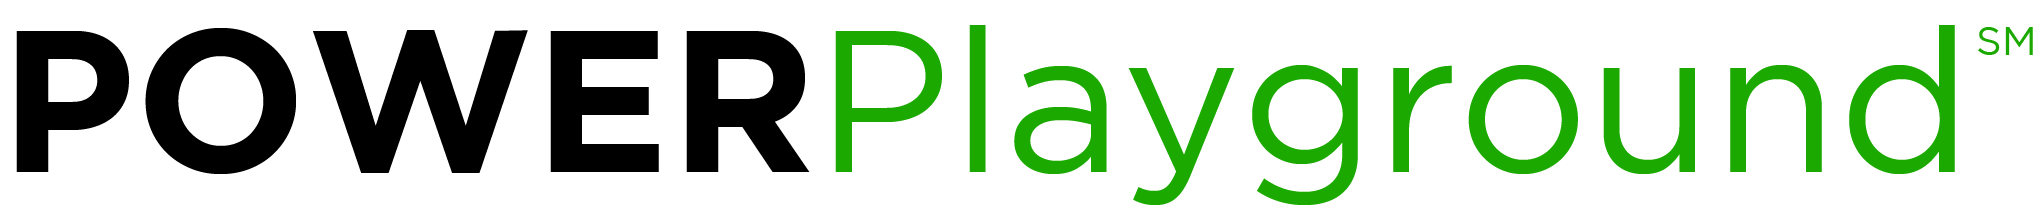 Power Plaground logo w SM jpg